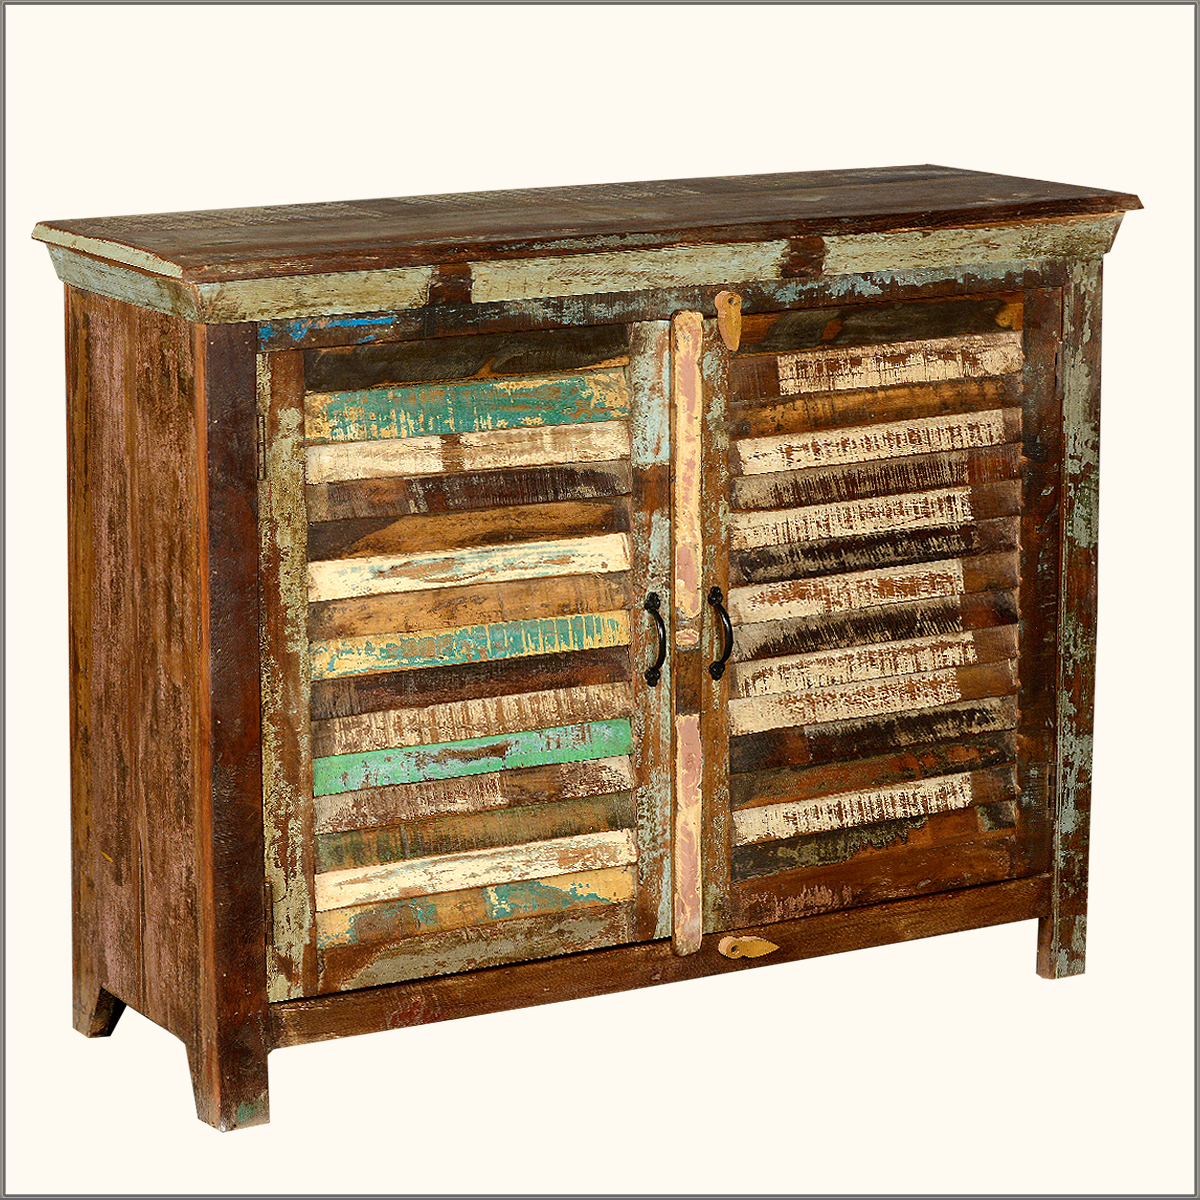 Reclaimed Wood Kitchen Cabinets: Rustic Old Reclaimed Wood Weathered Distressed Sideboard